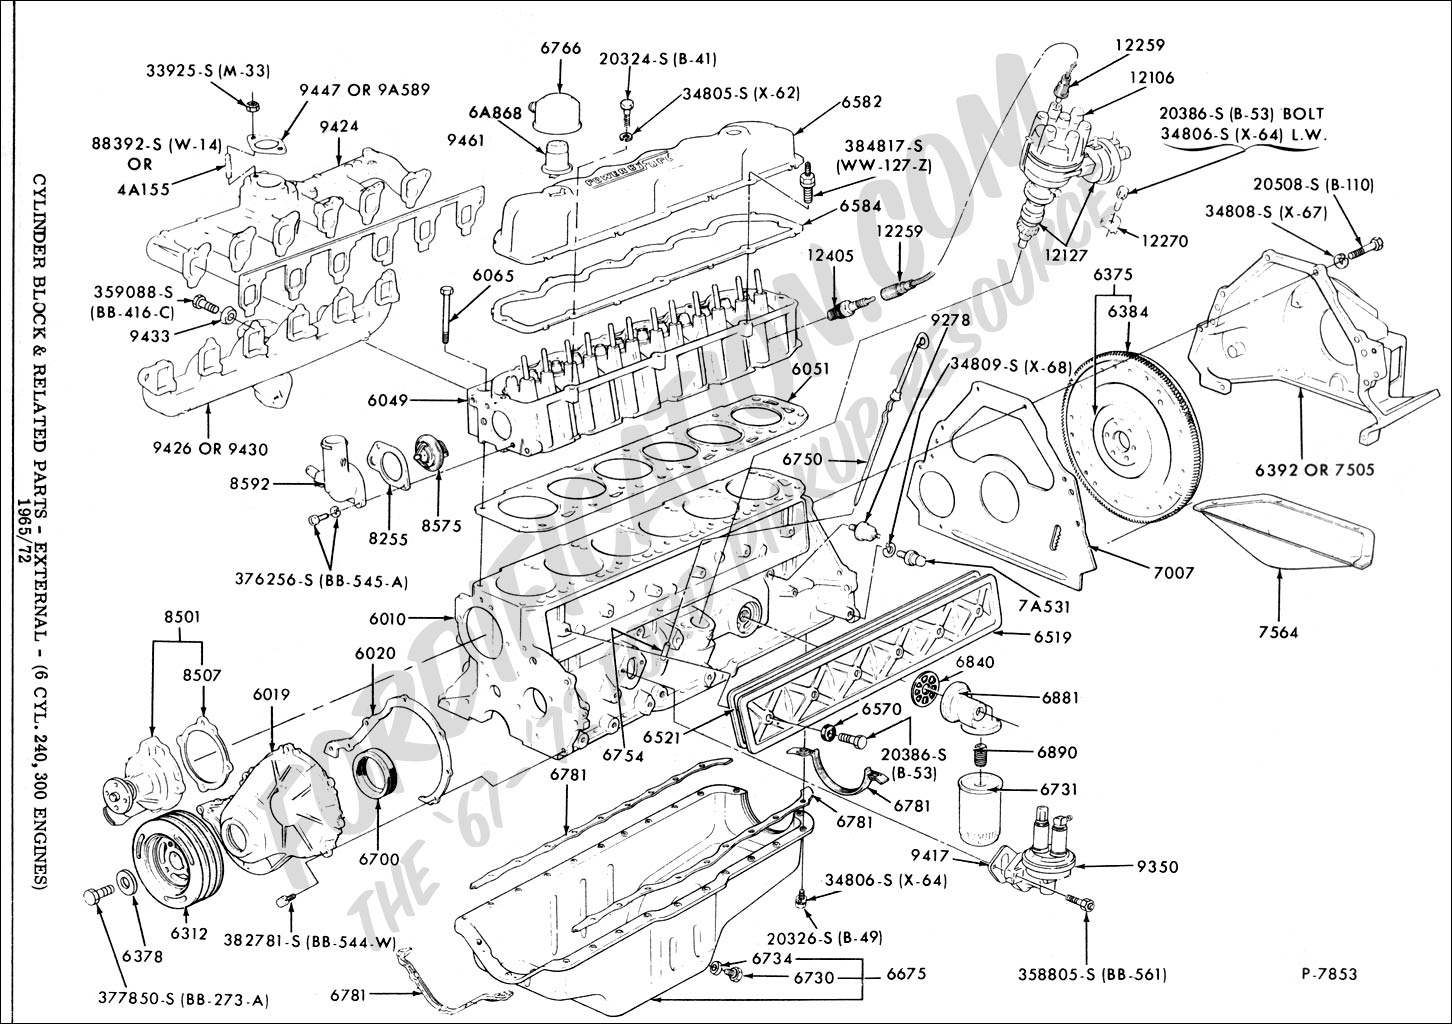 f100 engine diagram schematics wiring diagrams u2022 rh seniorlivinguniversity co